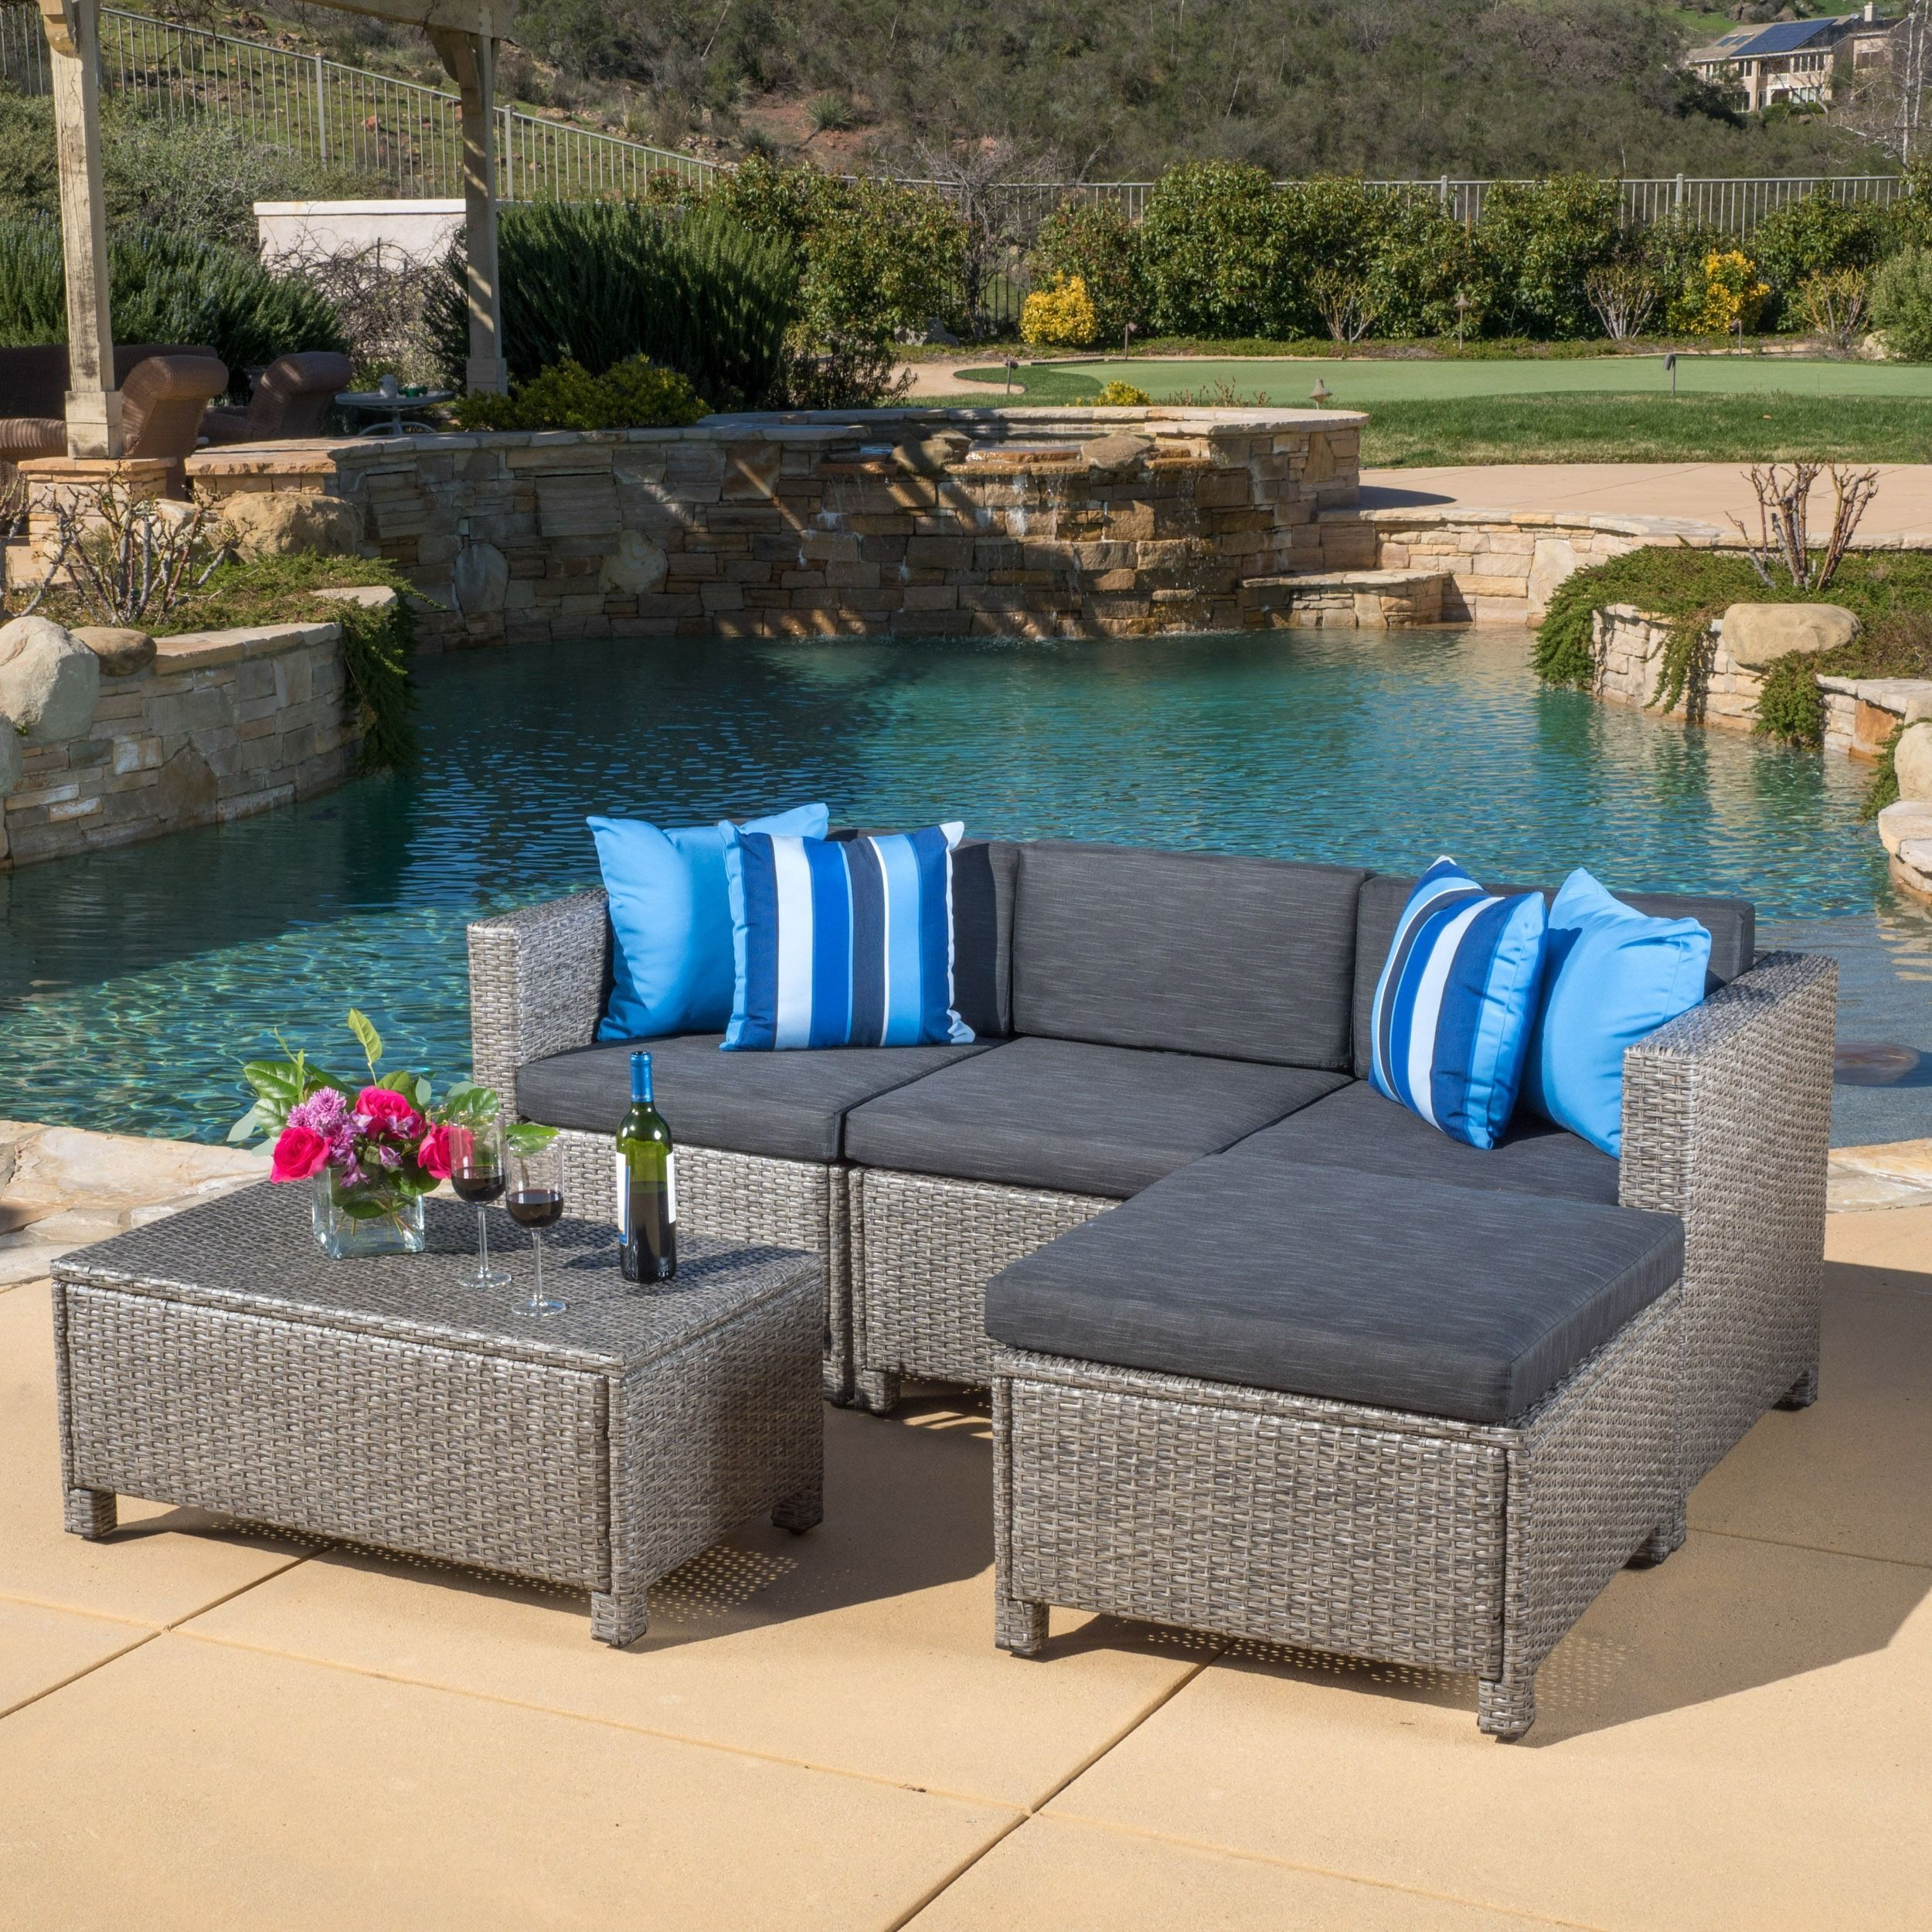 Furnish your outdoor living space with this lush outdoor wicker sofa set from Christopher Knight Home. This lovely set features durable powder coated iron, a sturdy wicker construction, and removable seat cushions for easy maintenance.